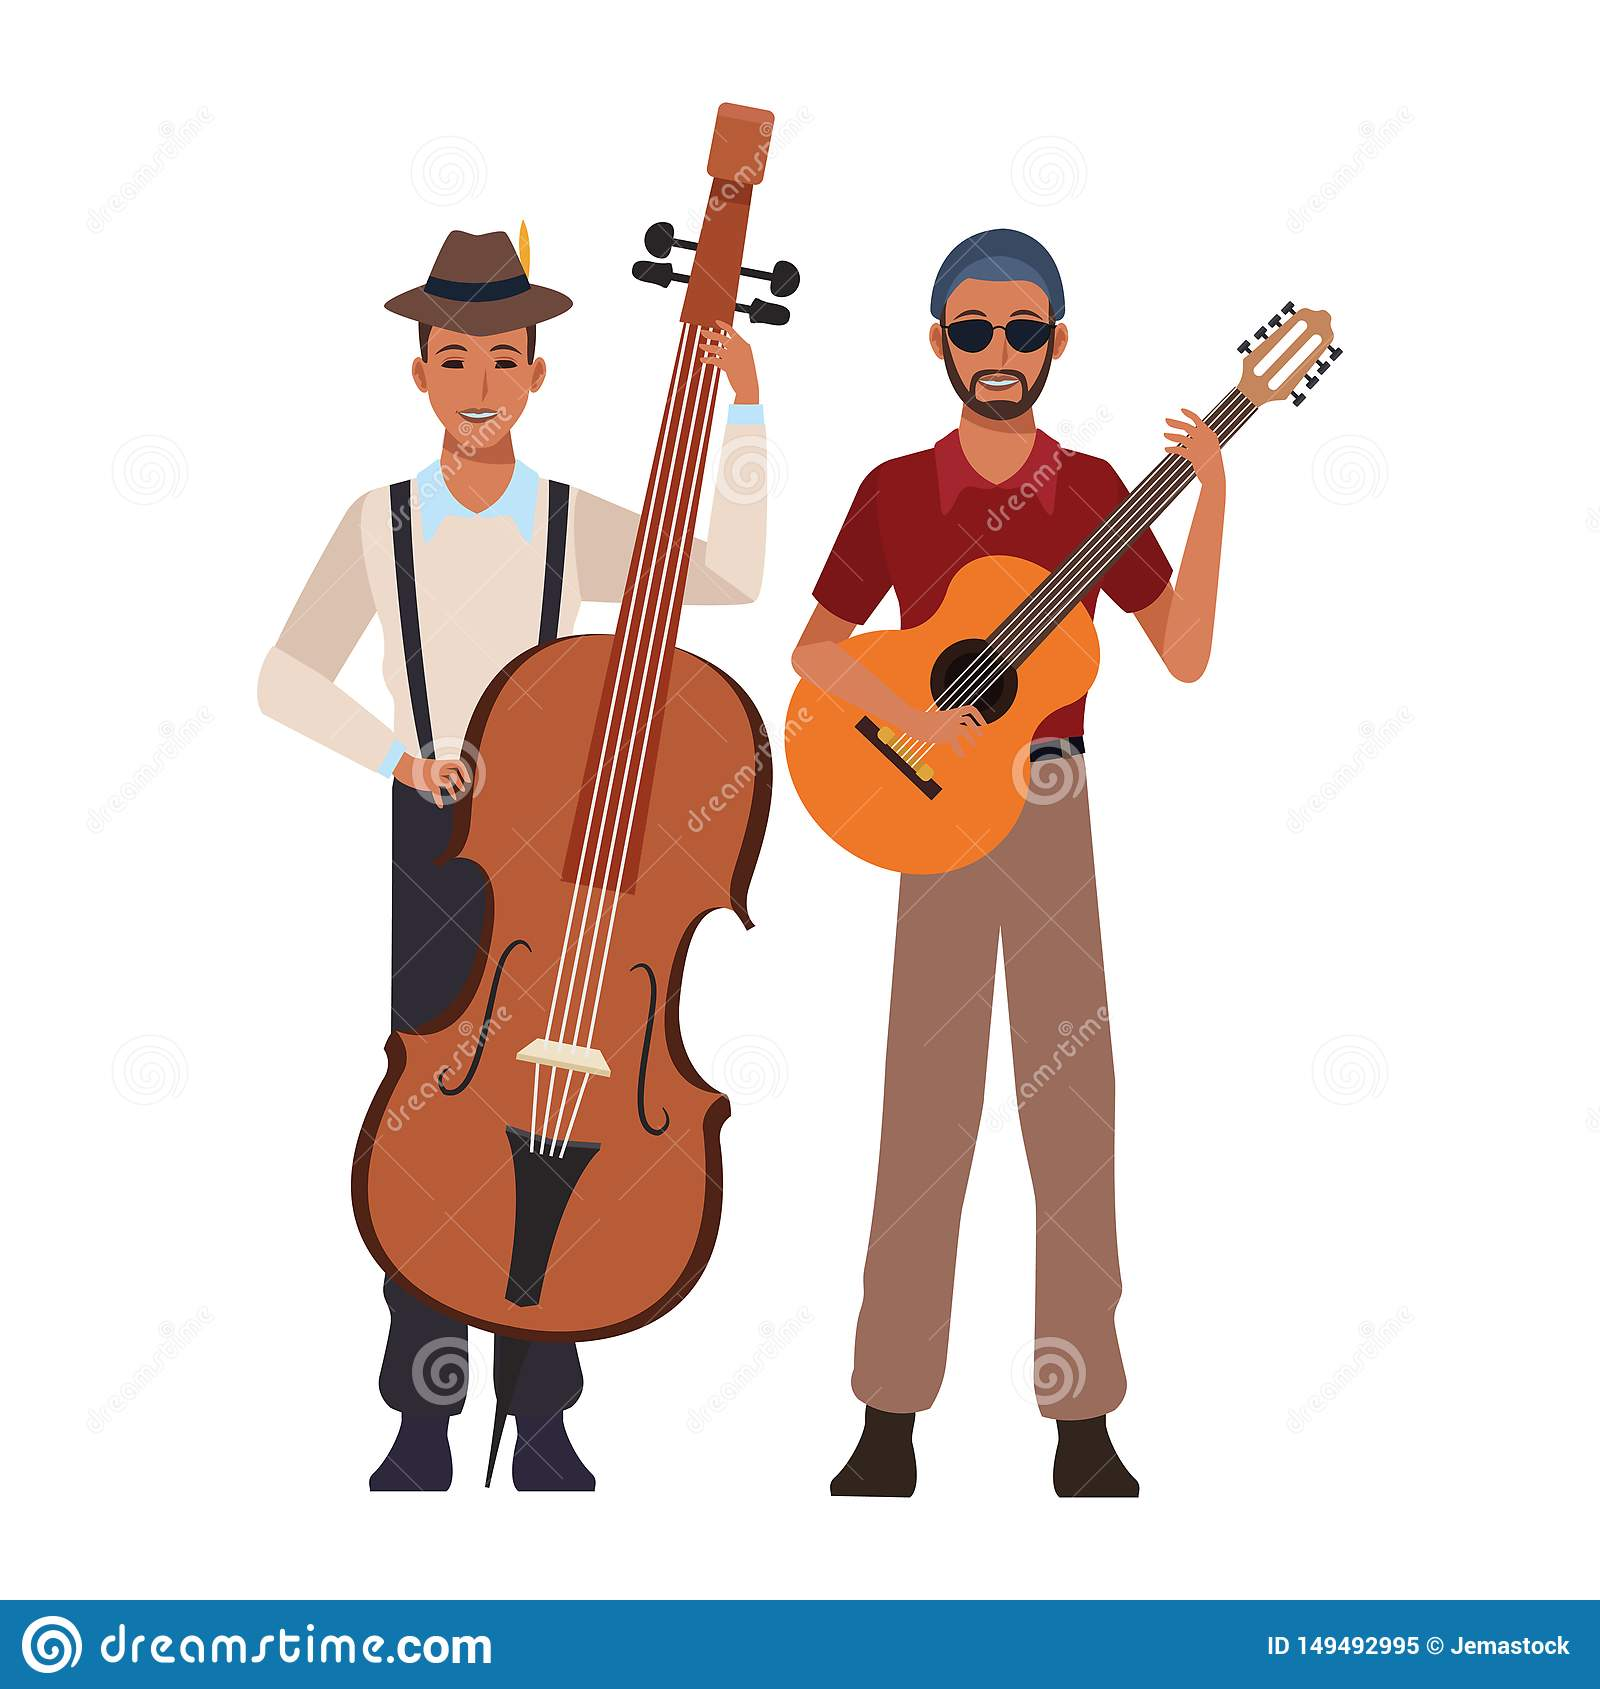 Musician playing bass and guitar